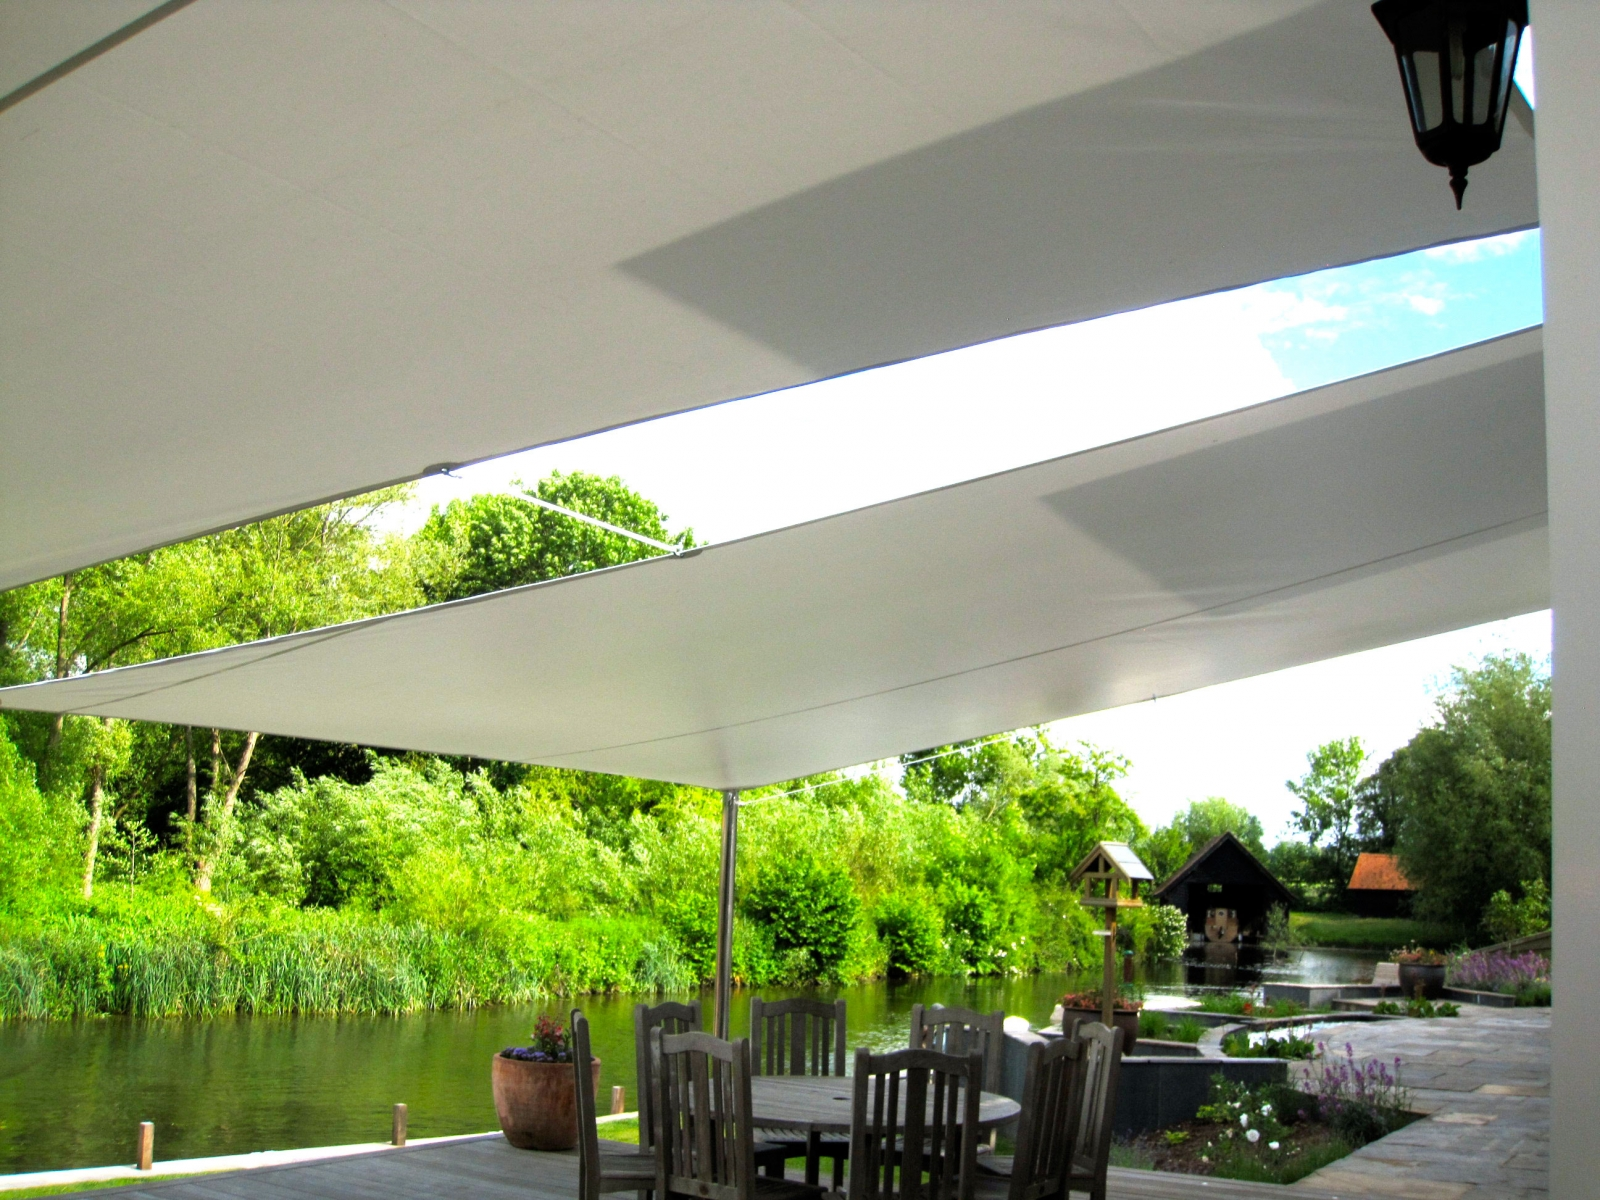 Riverbank Garden Canopy & Garden Covers Gallery - Cunningham Covers